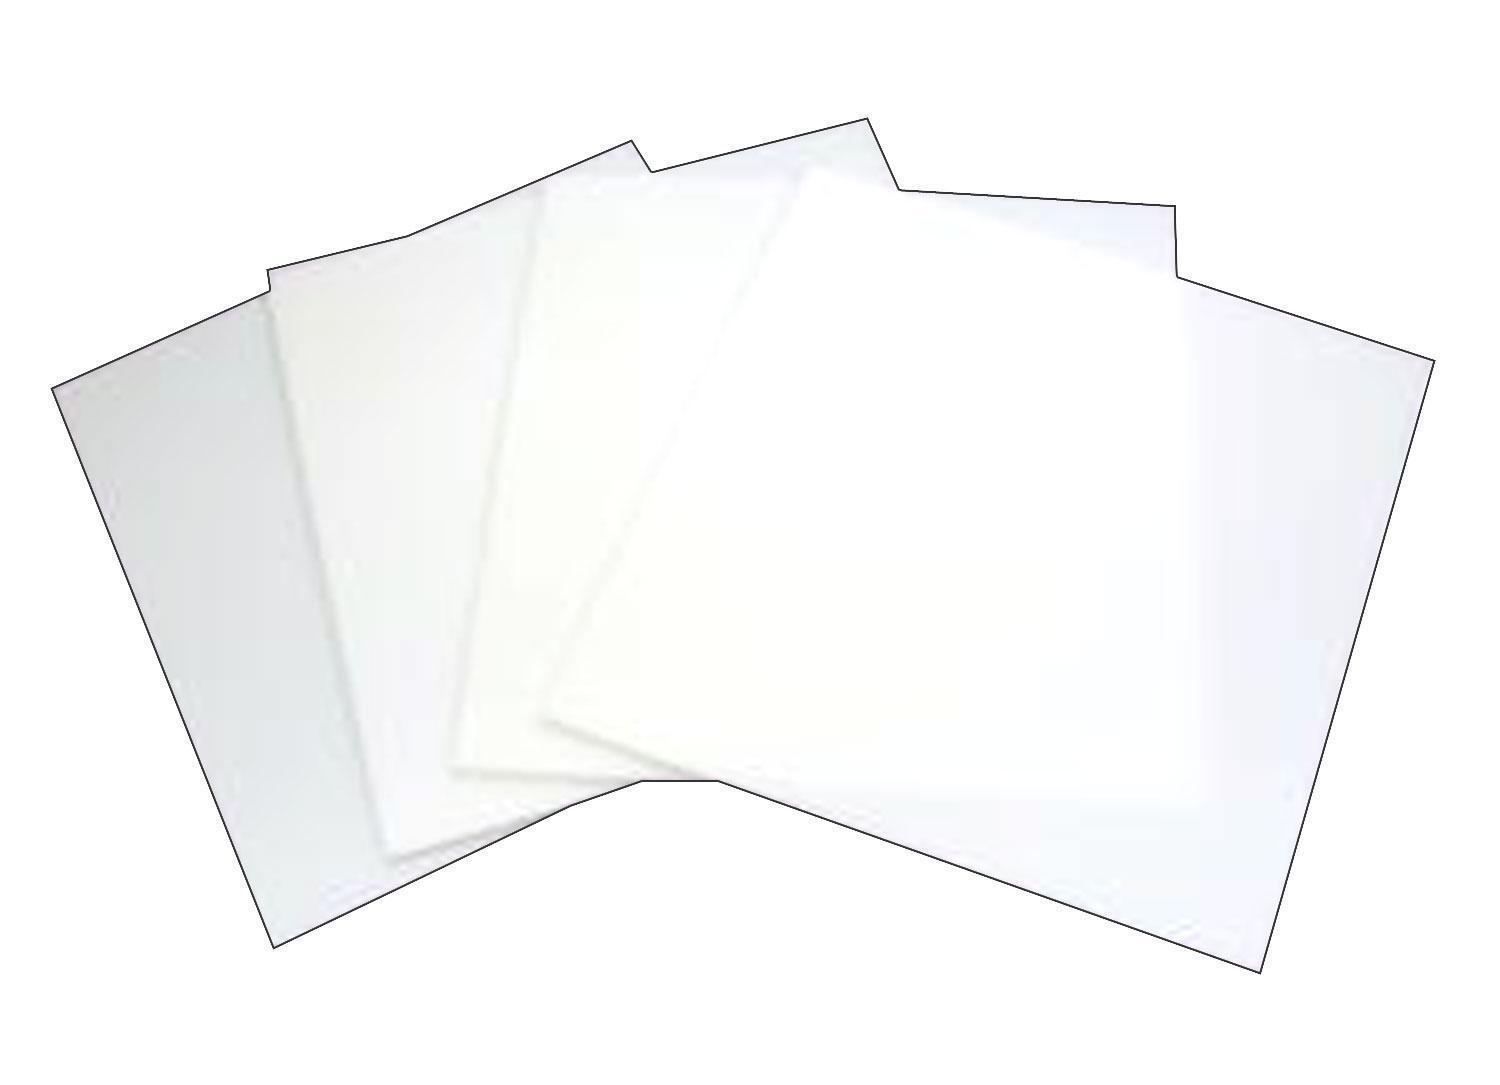 6 White Glass Squares 4 Pack - 96 COE